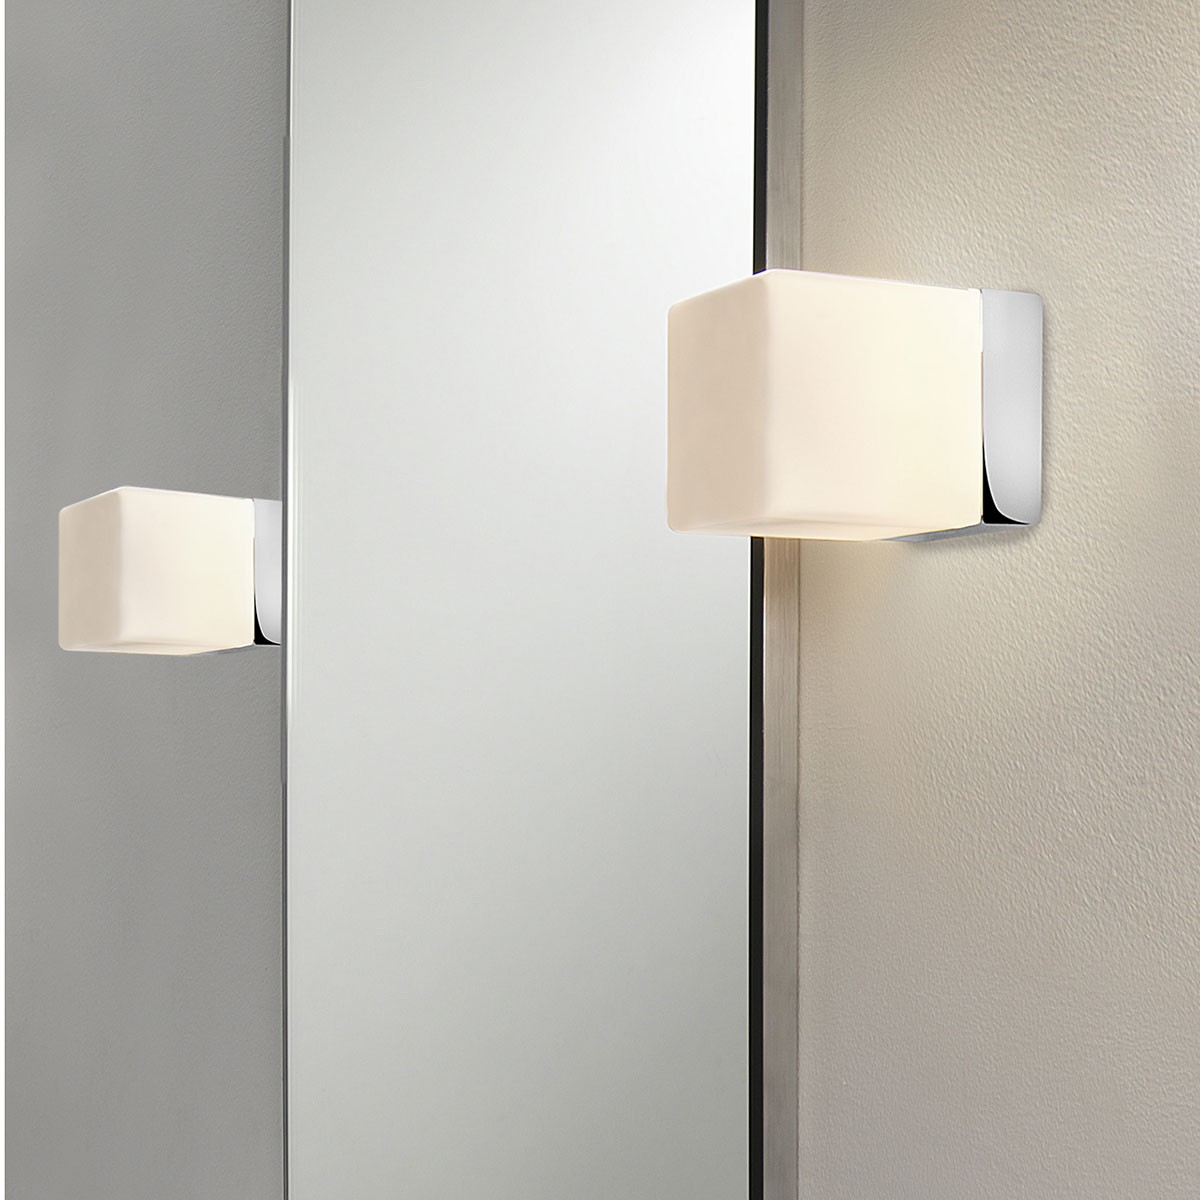 Glass Cube Wall Lights : Astro Cube Polished Chrome and White Glass Bathroom Wall Light at UK Electrical Supplies.